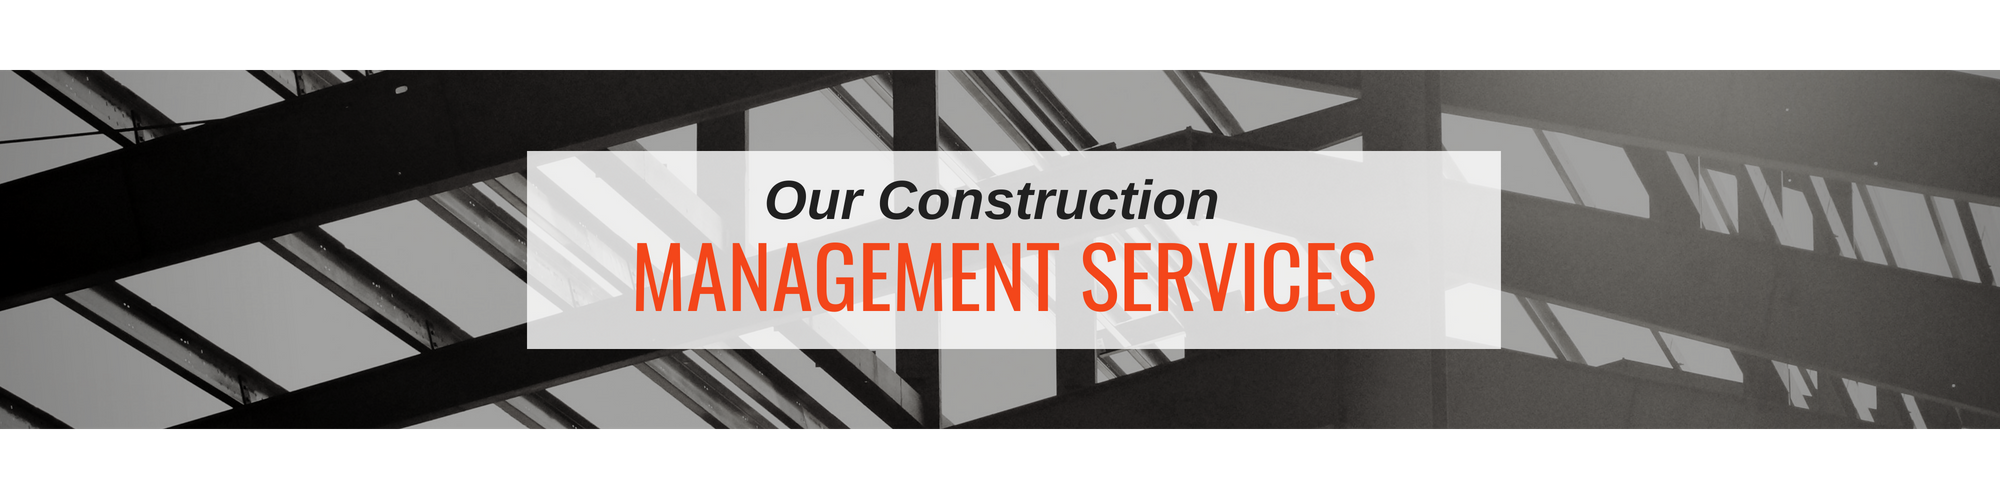 Our construction management services